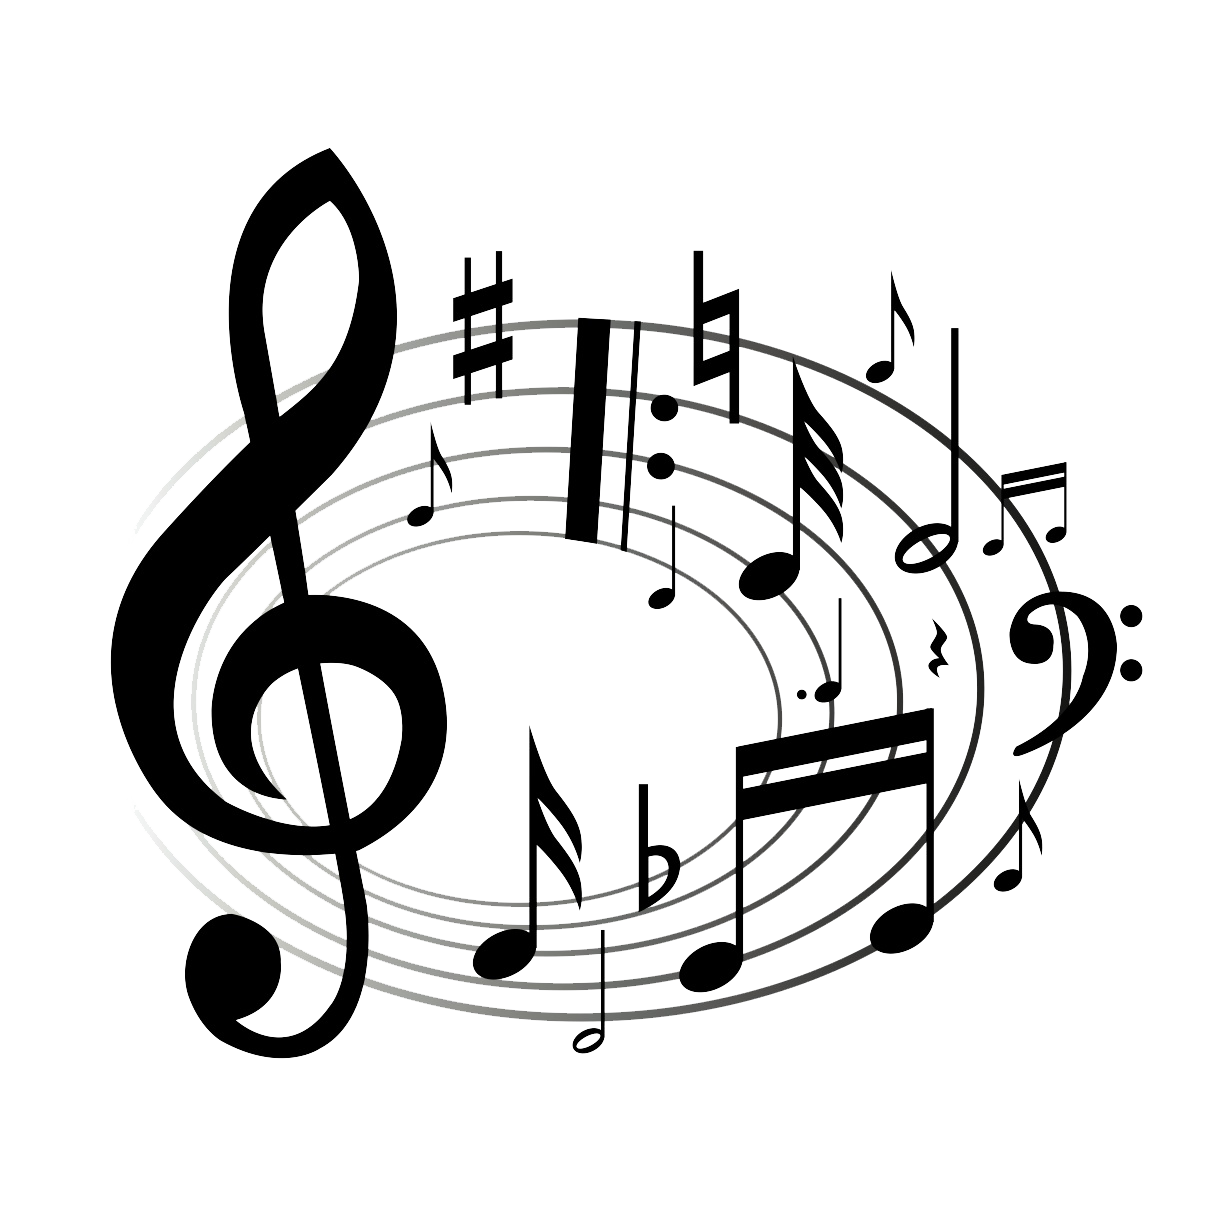 Music black and white clipart banner library Music Clipart Free Download | Clipart Panda - Free Clipart Images banner library